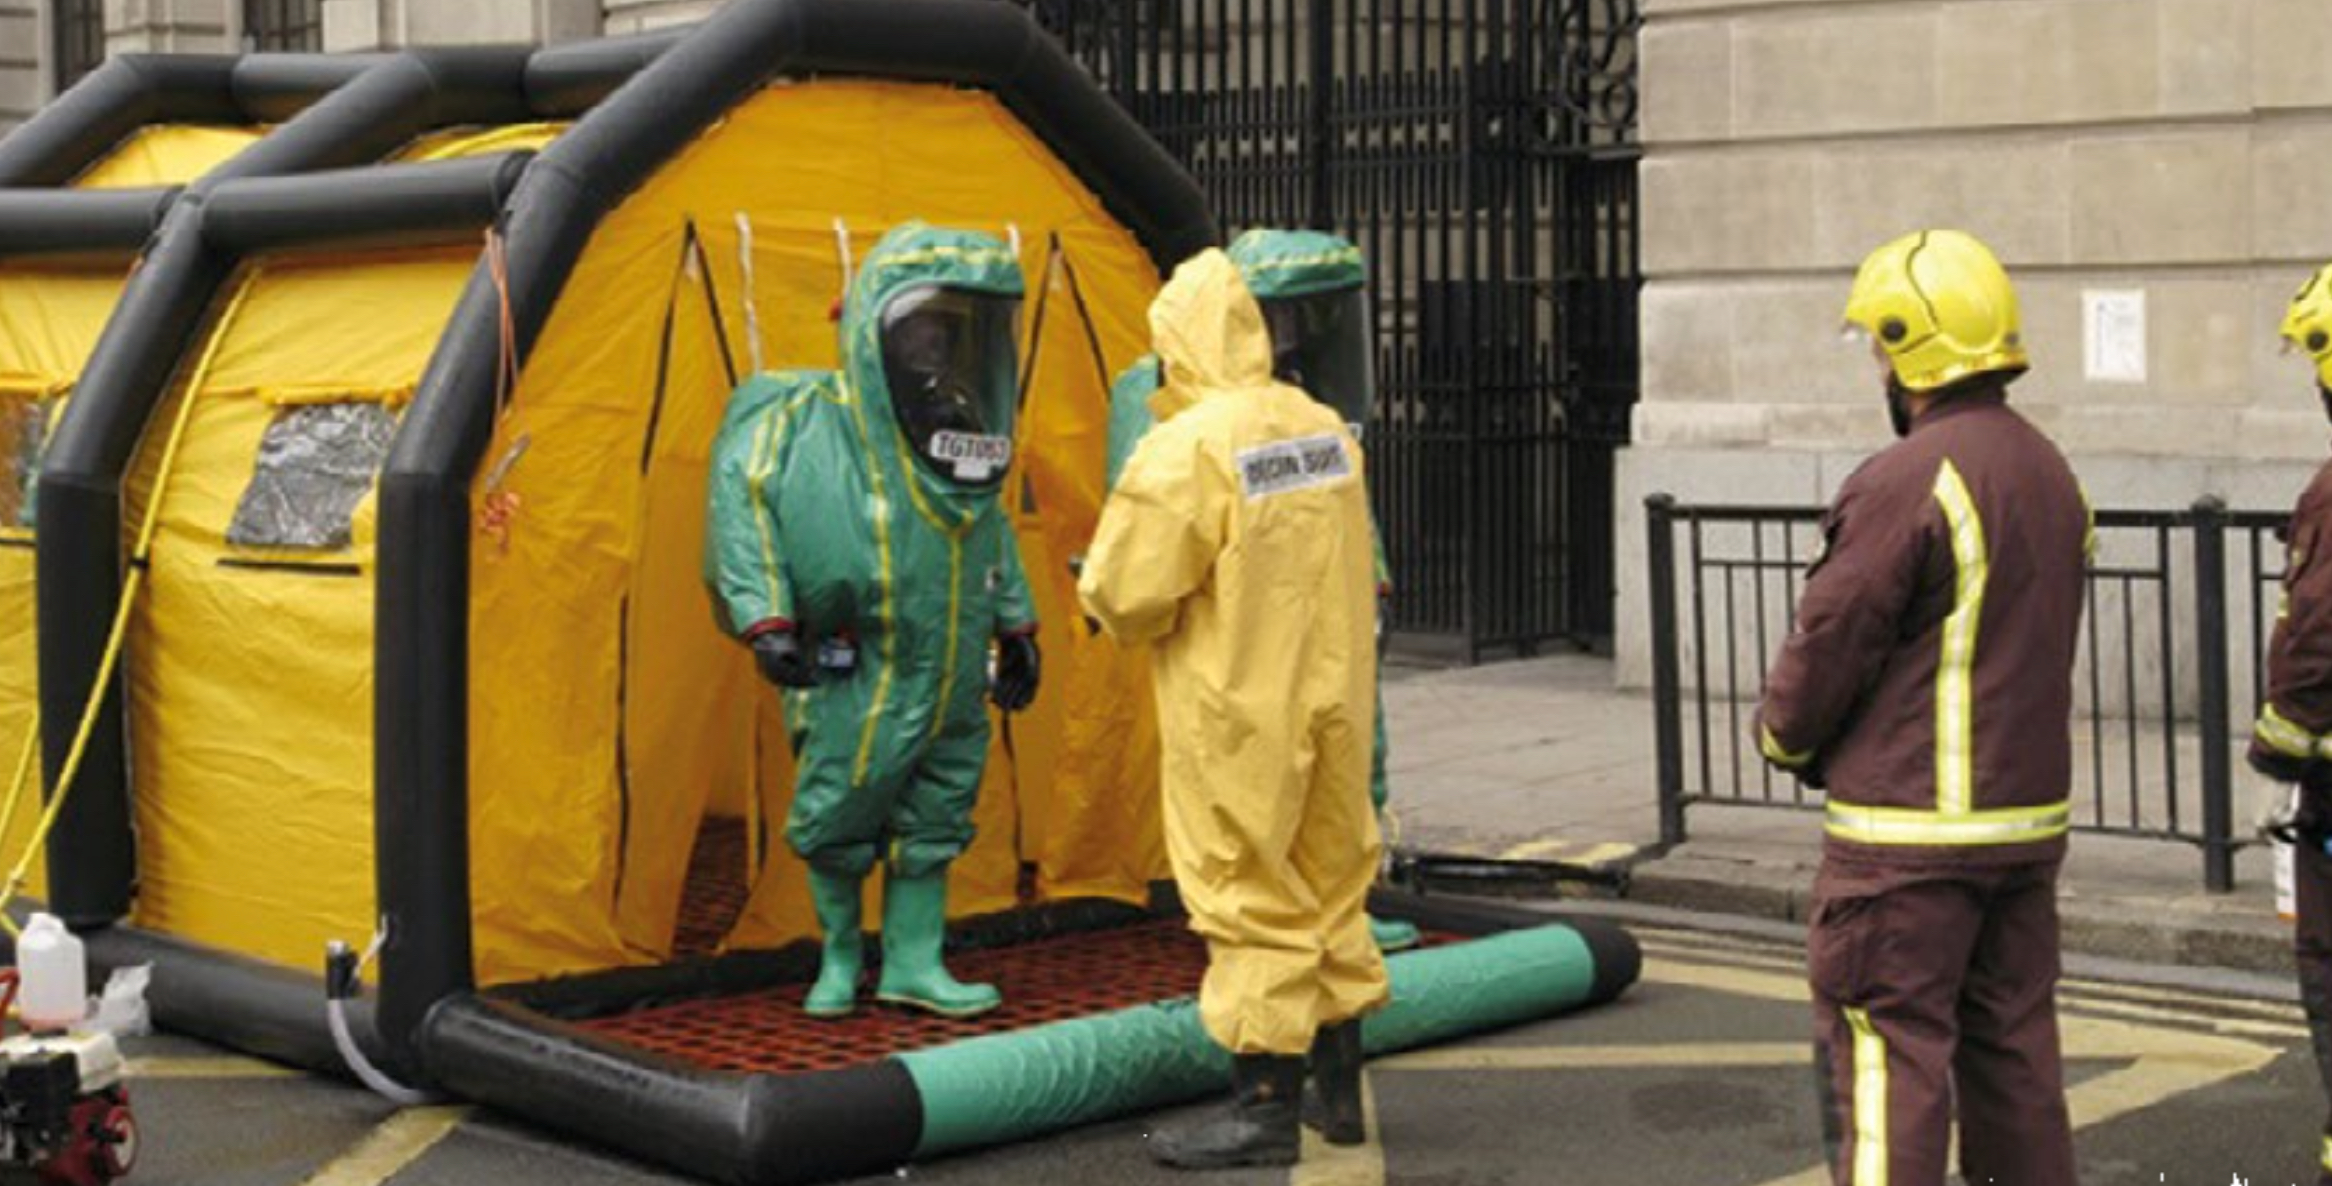 a HazMat tent and first reposnders in full HazMat protective suits.